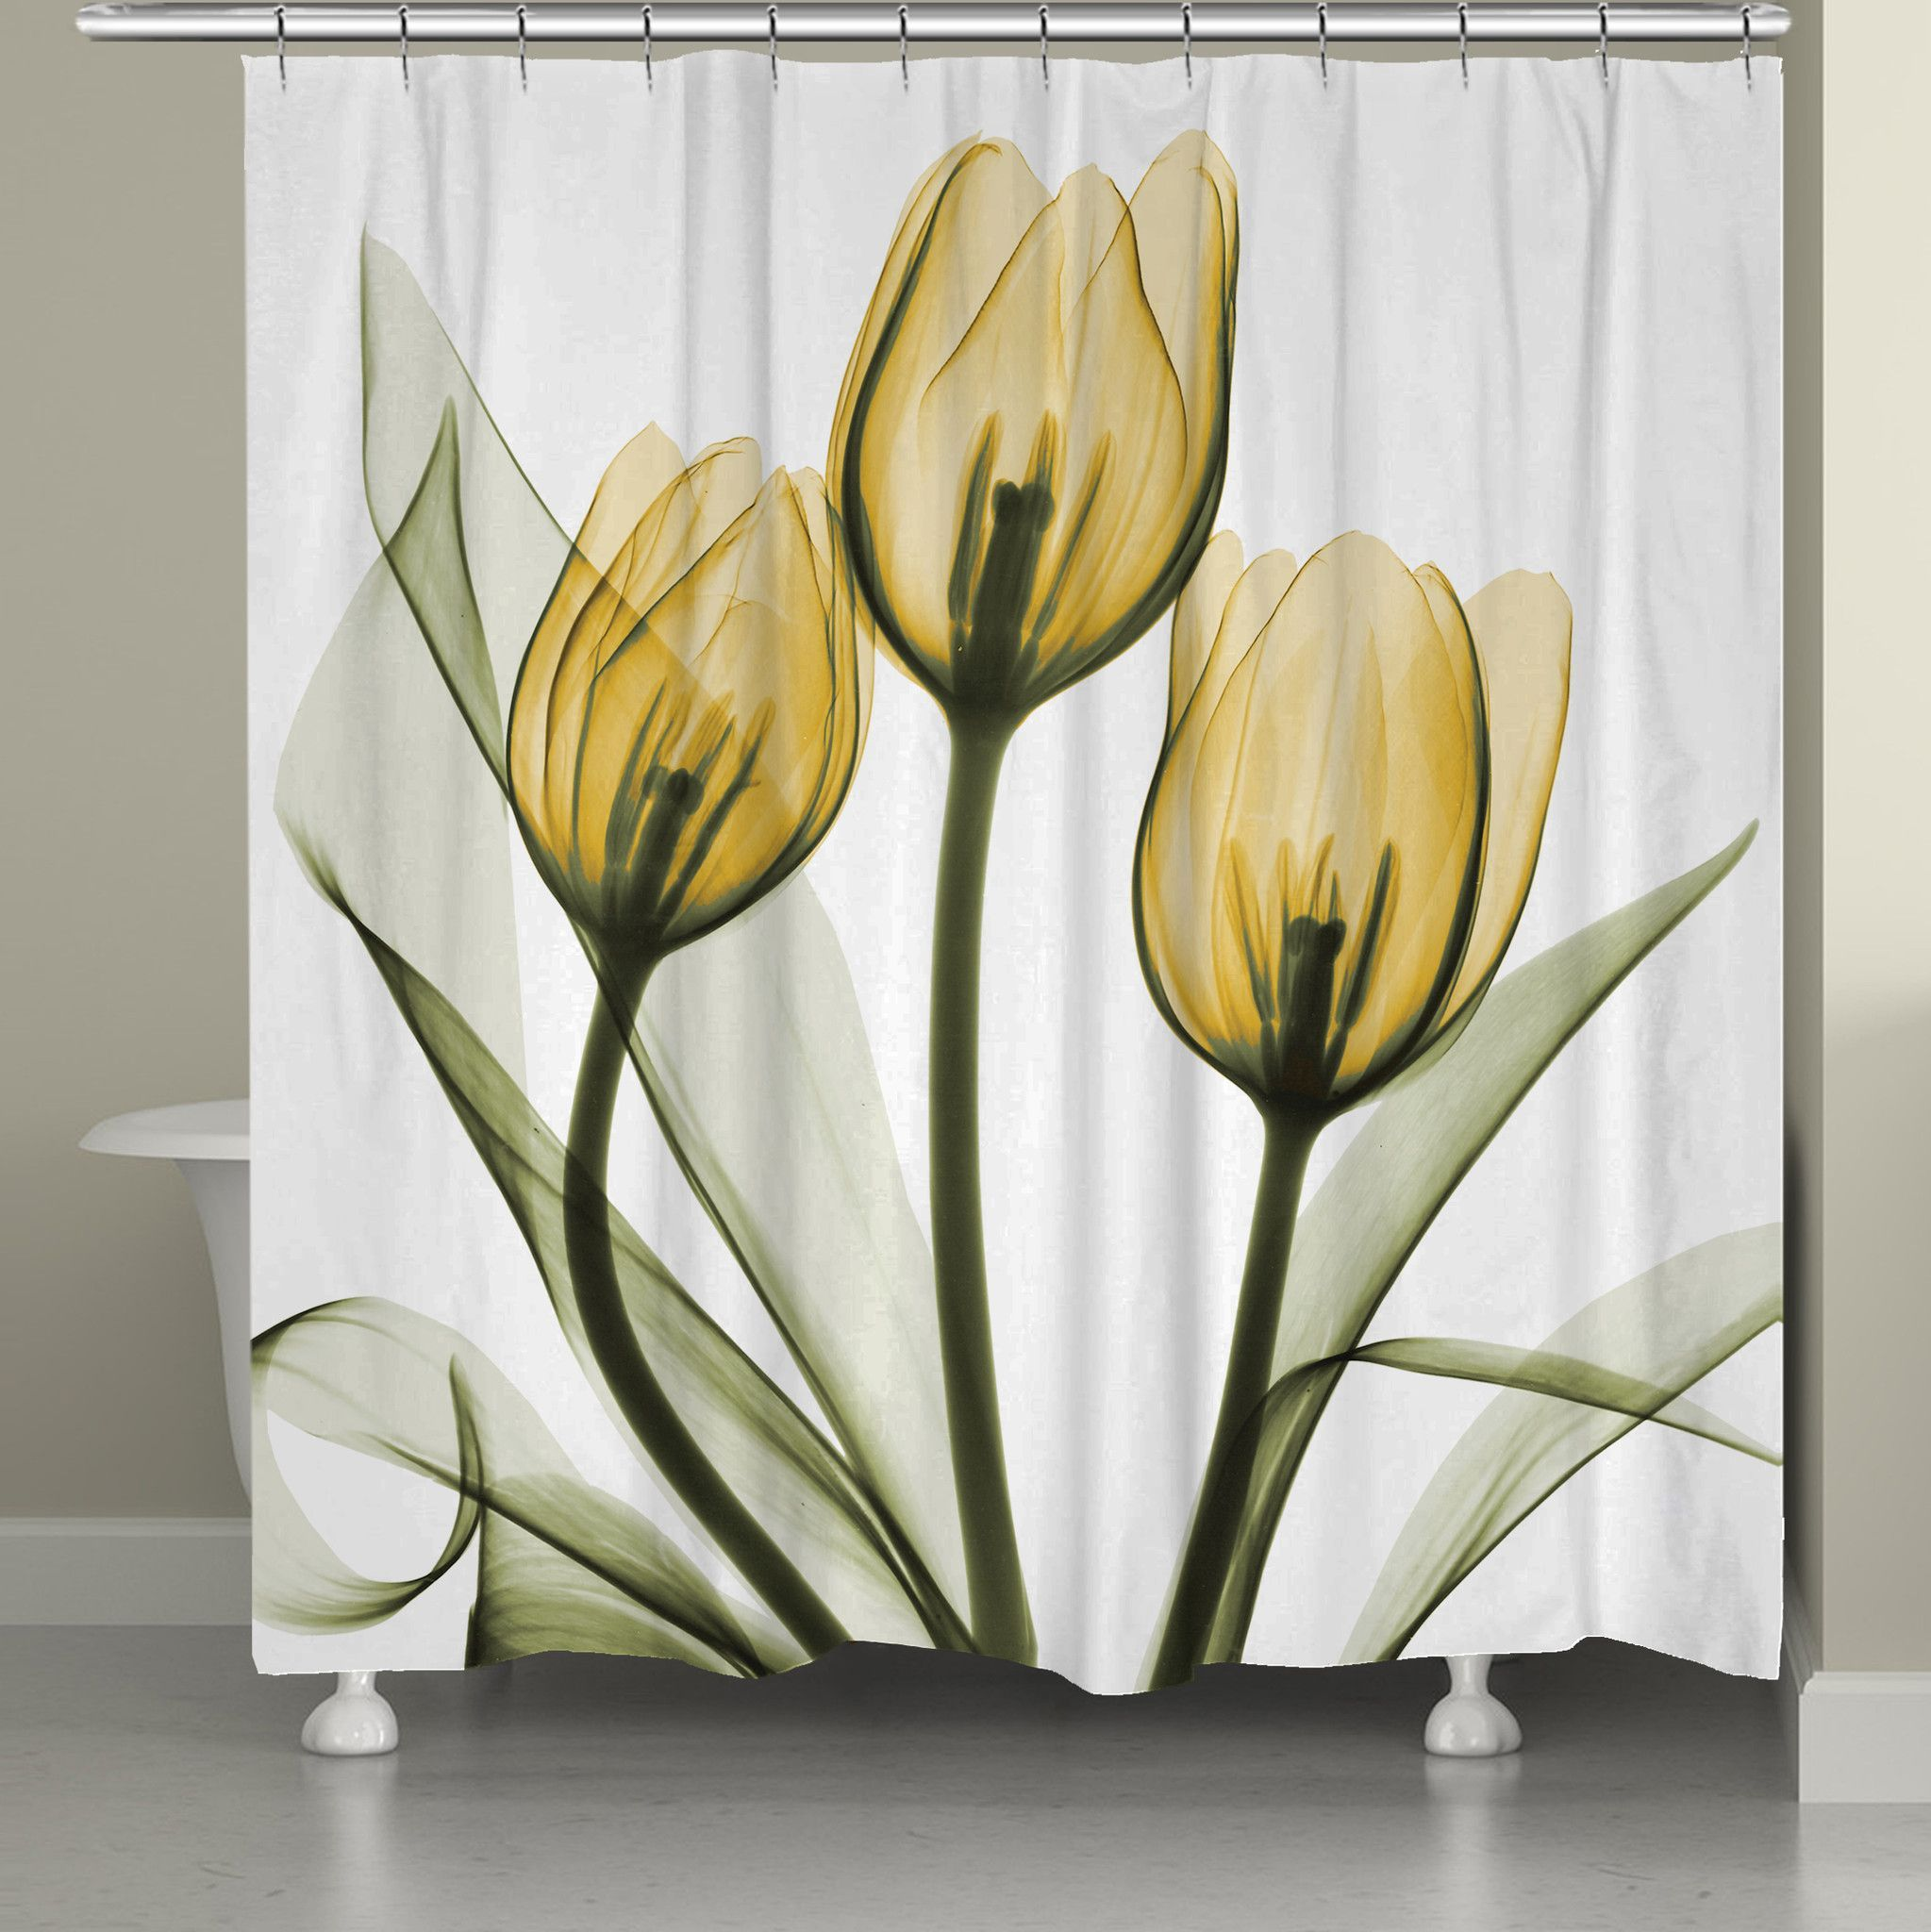 Golden X Ray Tulips Shower Curtain Floral Shower Curtains